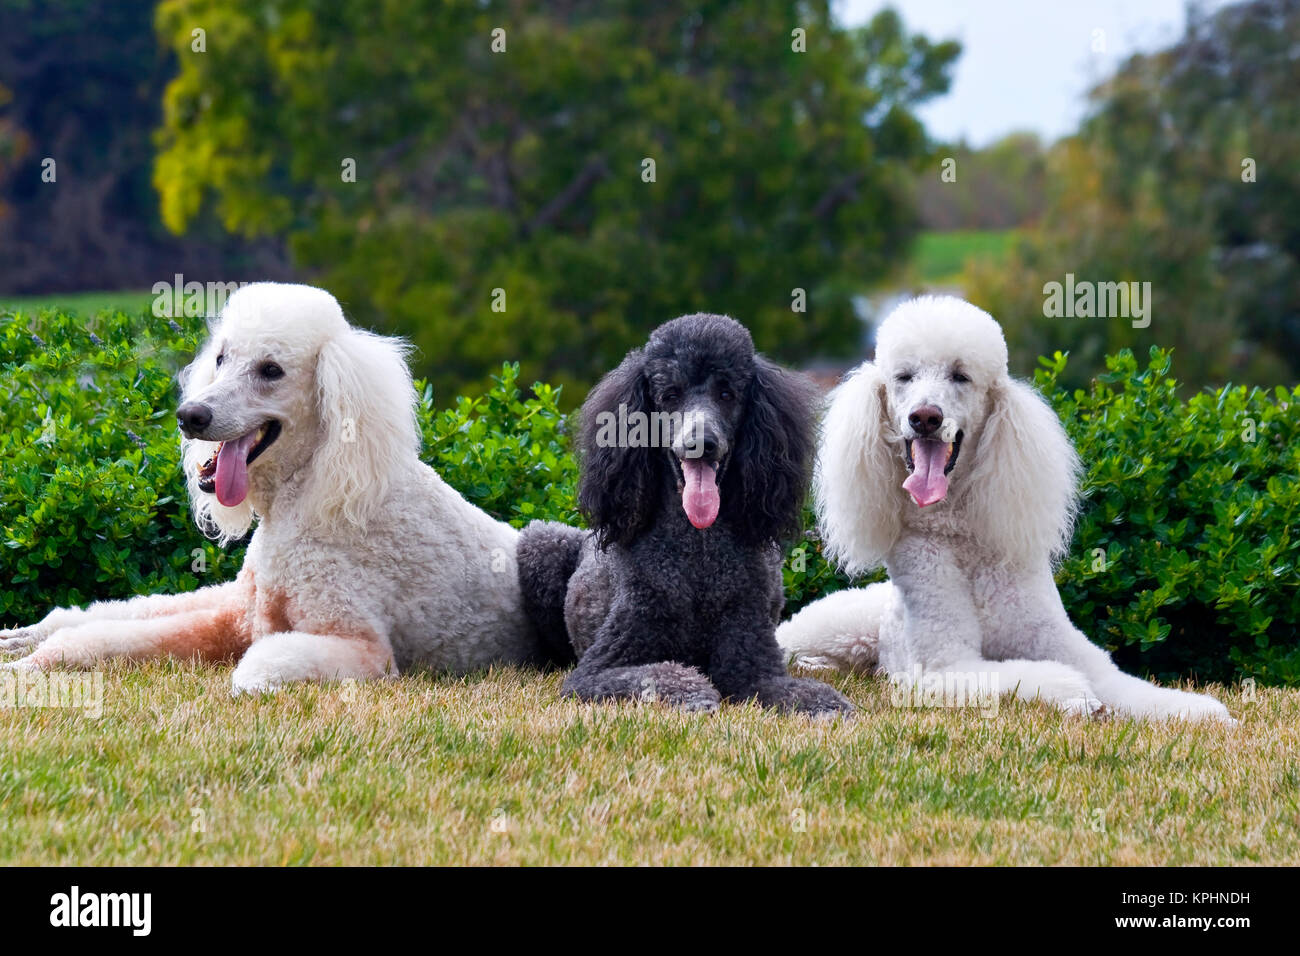 USA, California. Three Standard Poodles posing together on a lawn. - Stock Image